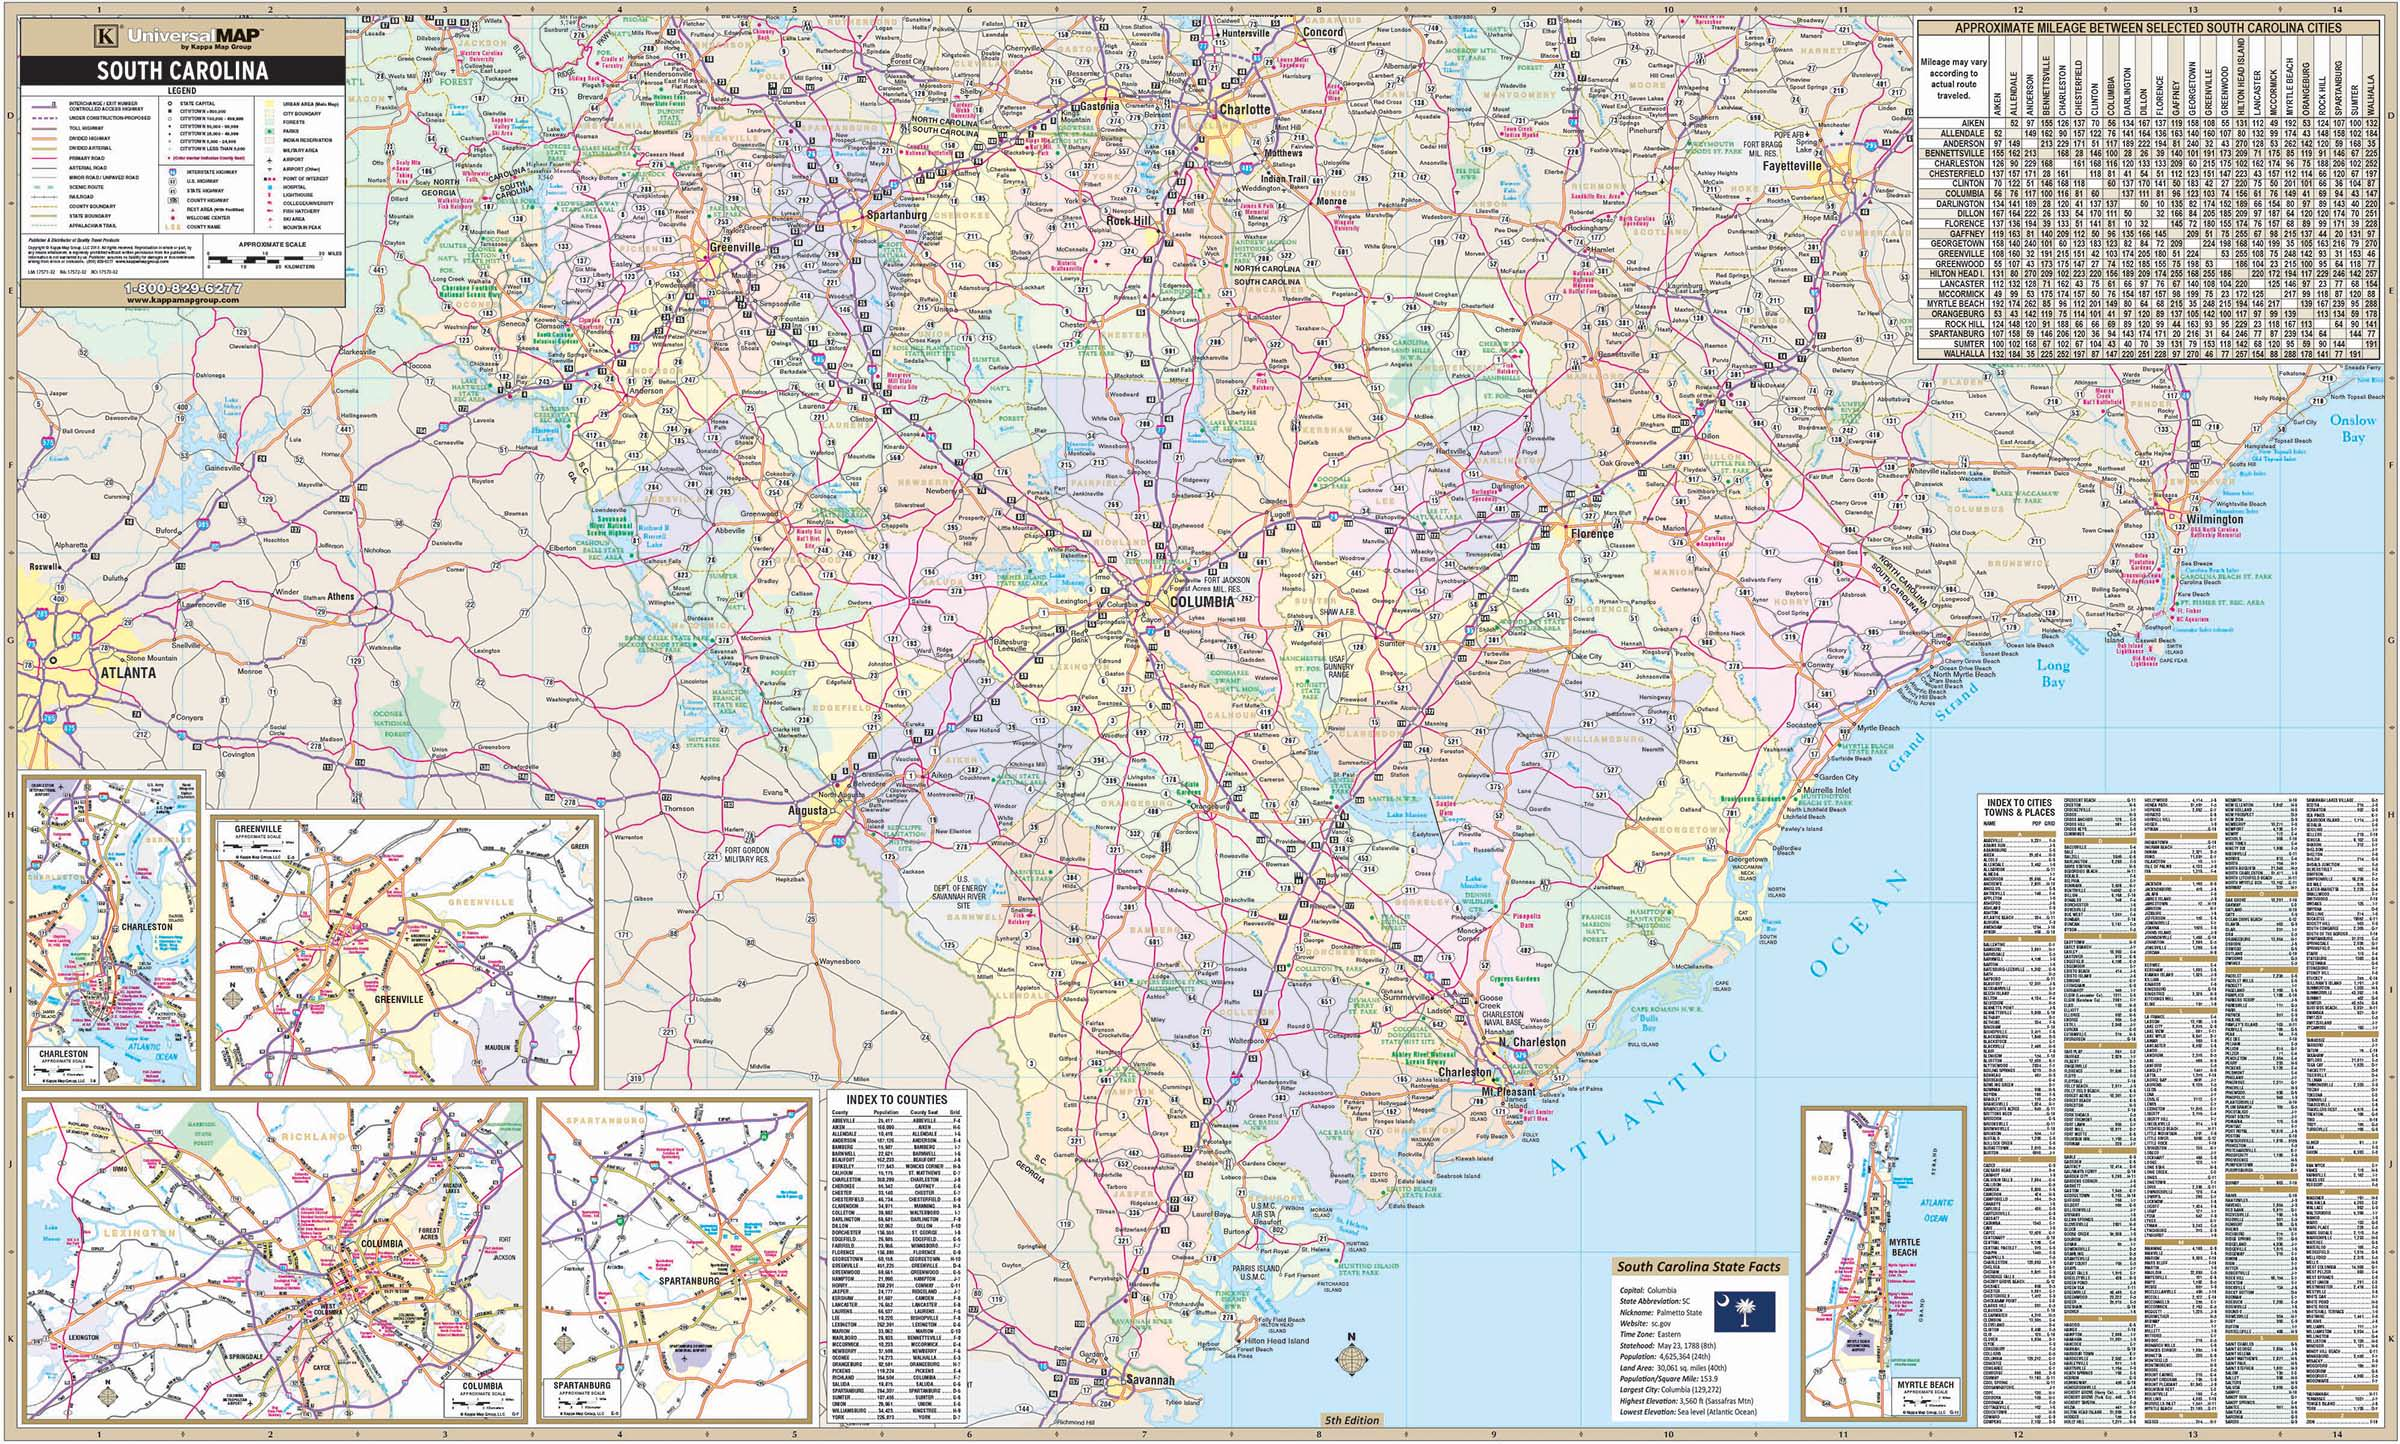 South Carolina State Wall Map – KAPPA MAP GROUP